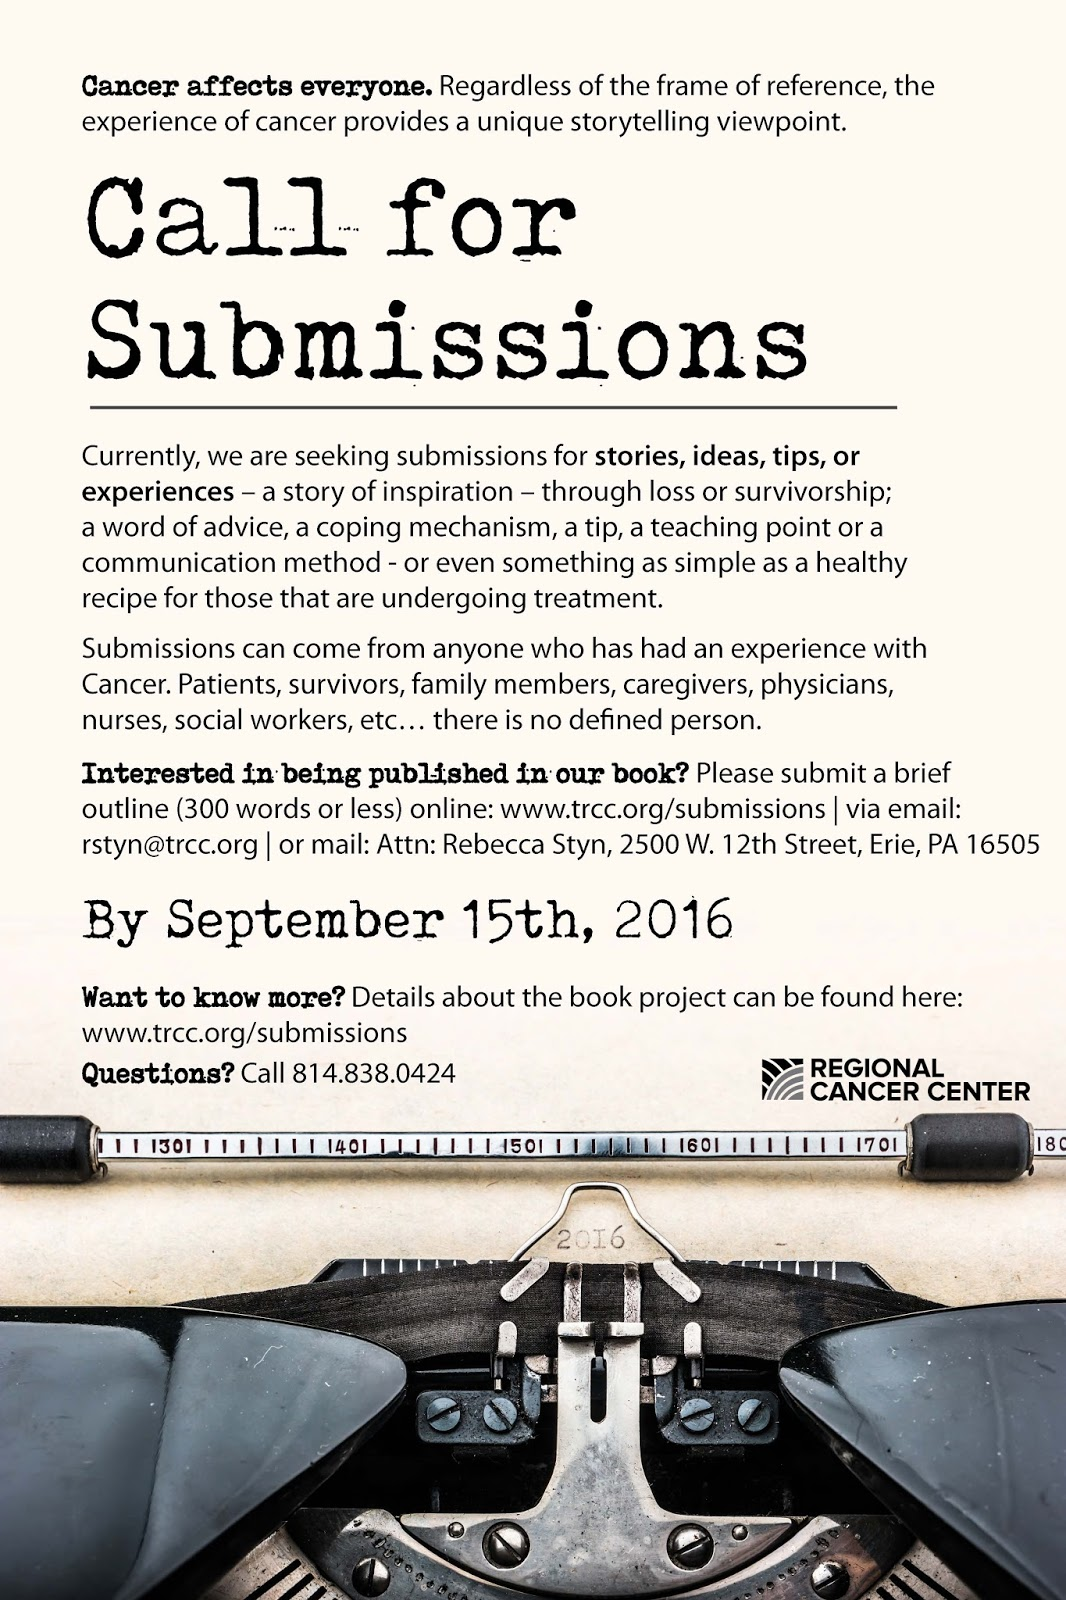 Books Galore, Erie PA: Regional Cancer Center Call for Submissions